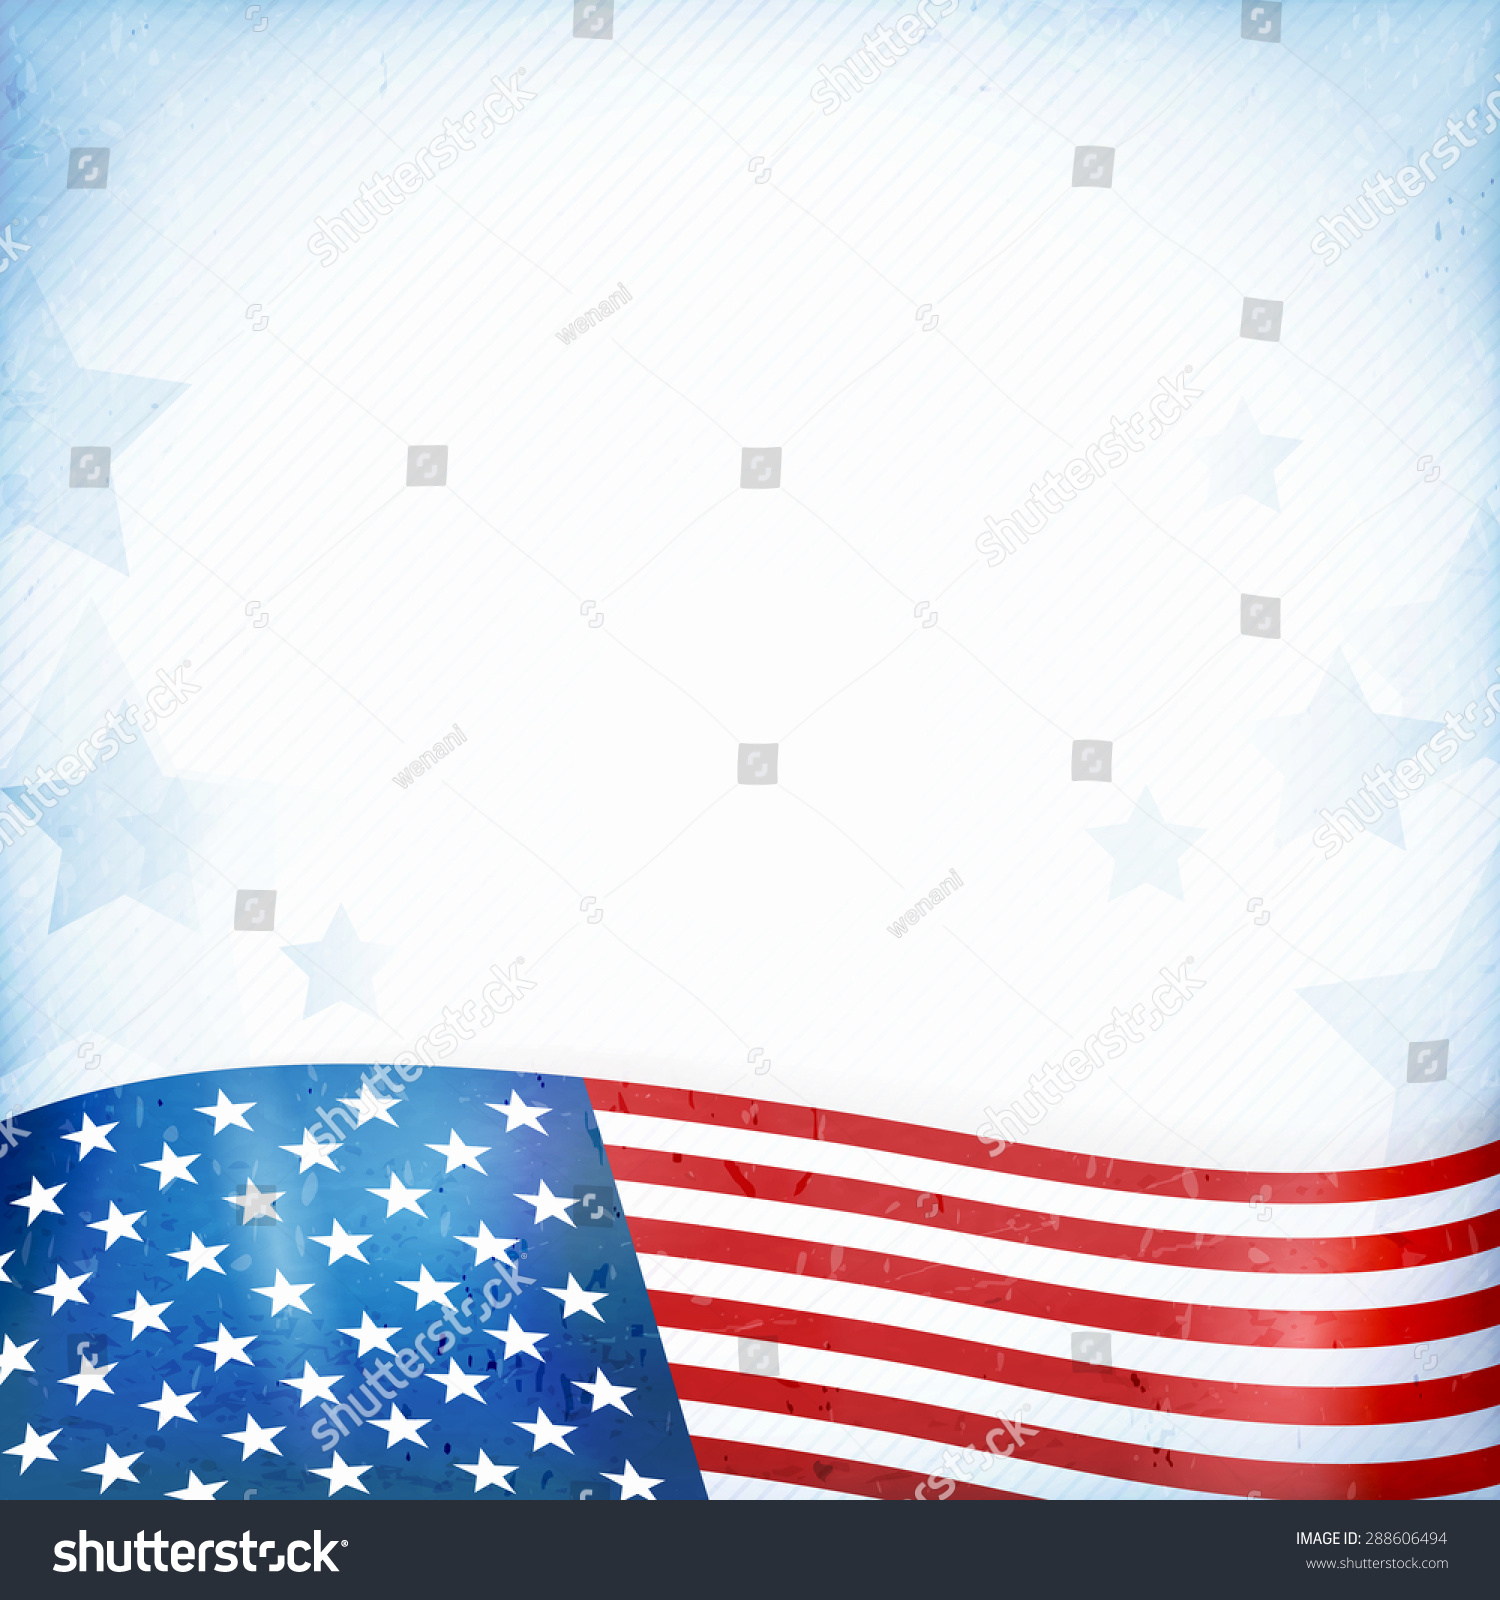 Us American Flag Themed Background Or Card With Wavy Flag At The Bottom Forming A